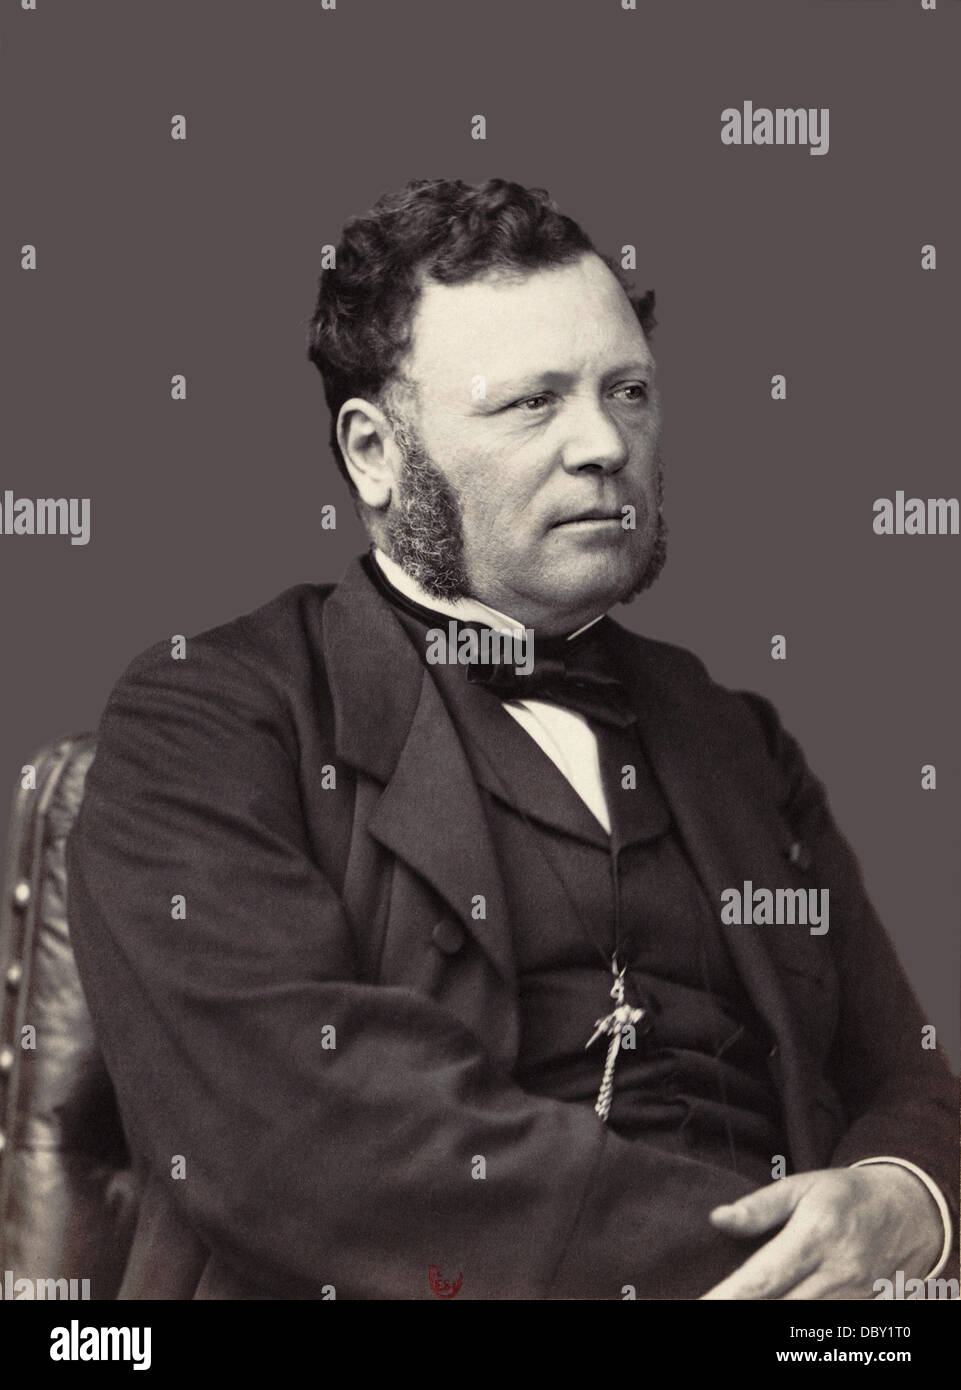 Ferdinand Barrot (1806 - 1883), french lawyer and politician. - Stock Image